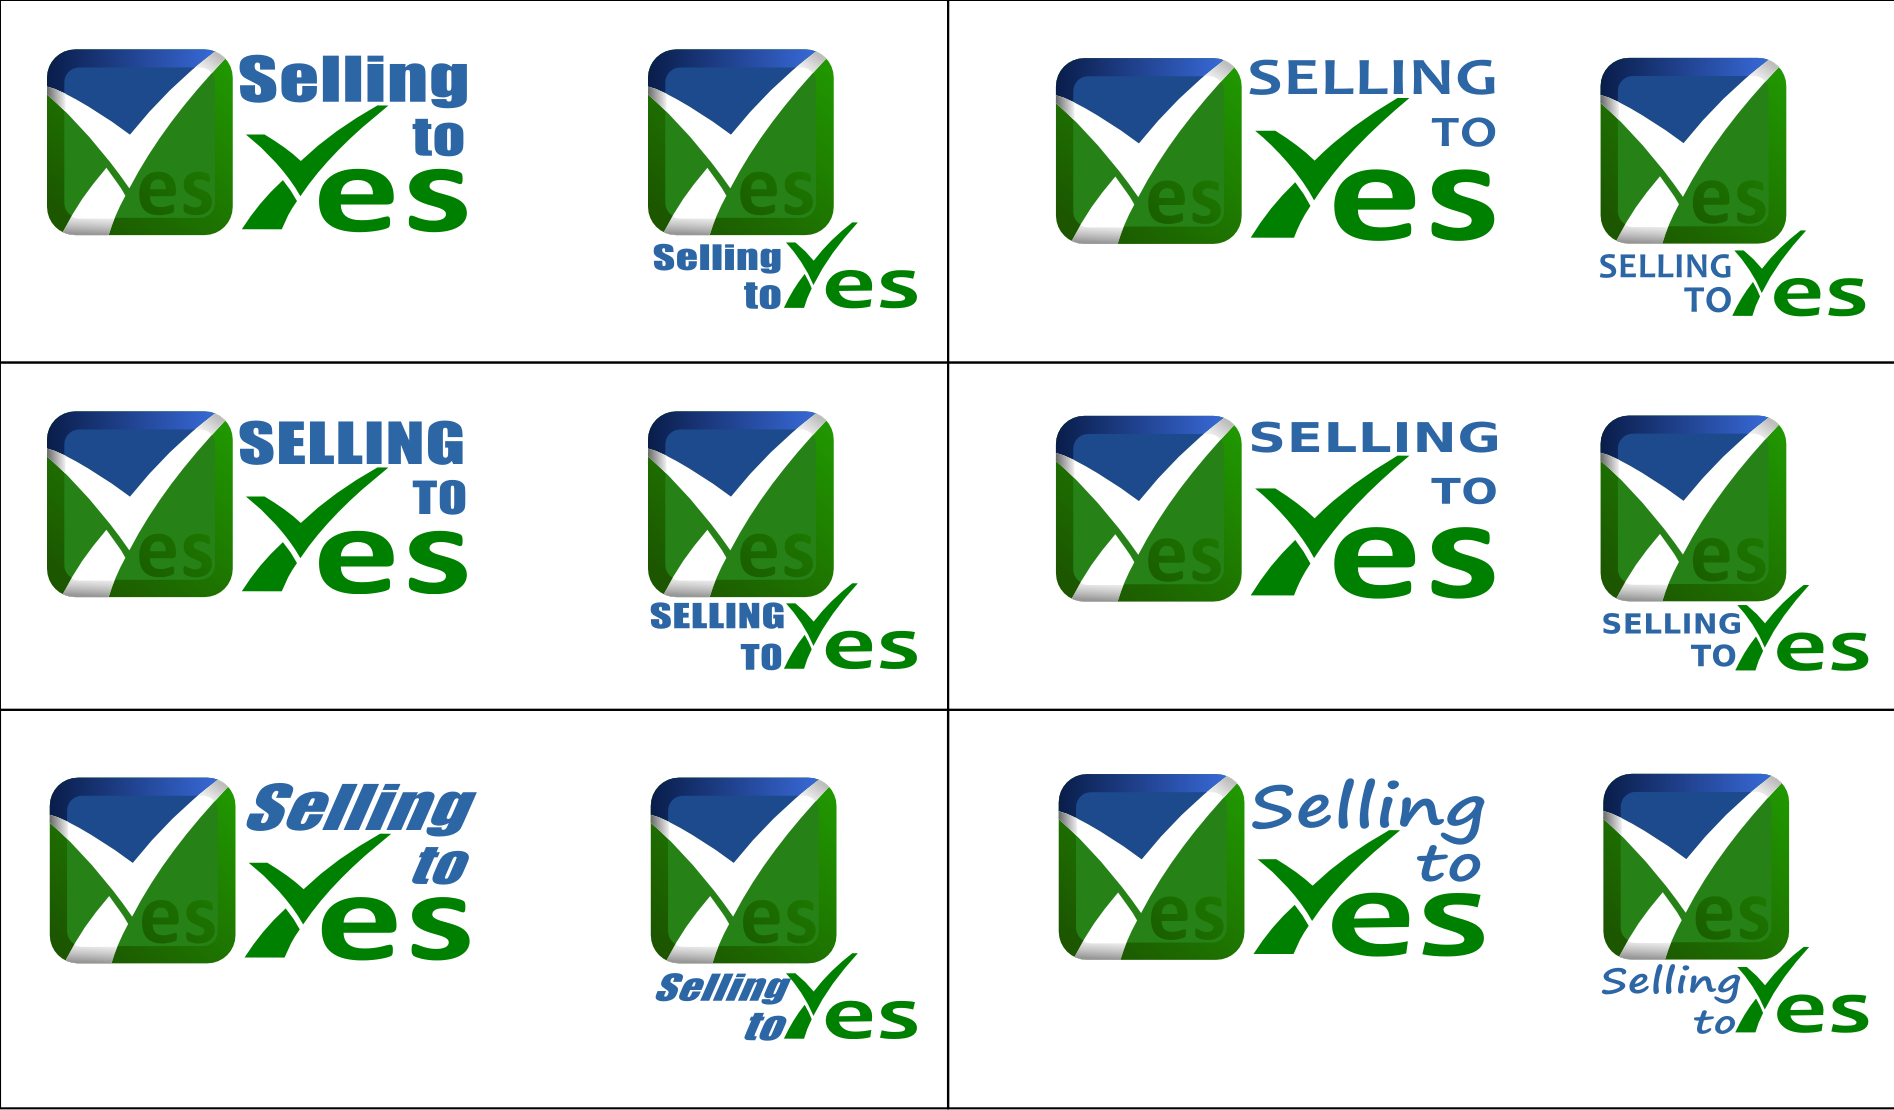 Create the next logo for Selling to Yes